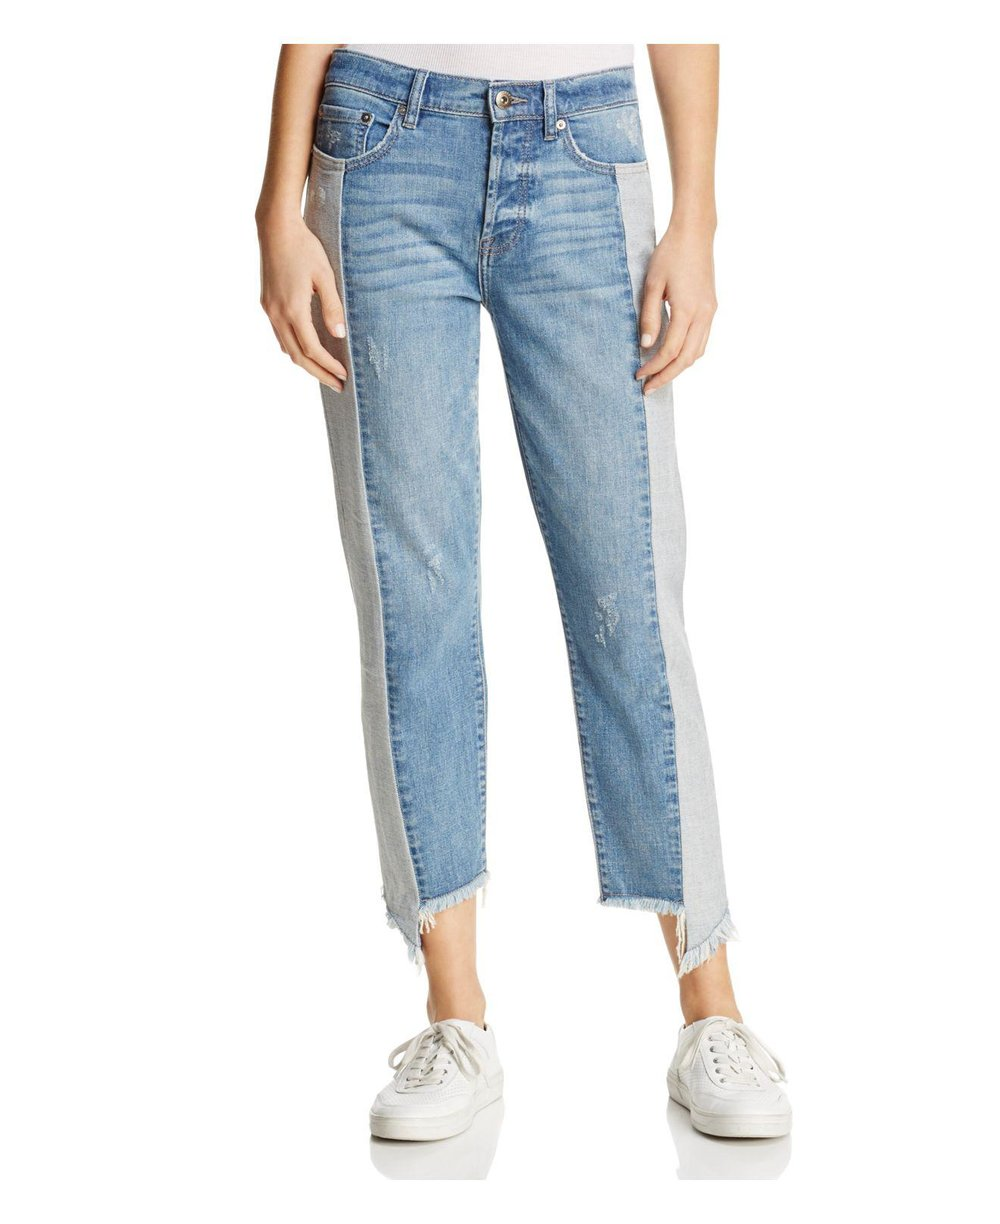 pistola-Other-Side-Charlie-Paneled-Straight-leg-Jeans-In-Other-Side.jpg